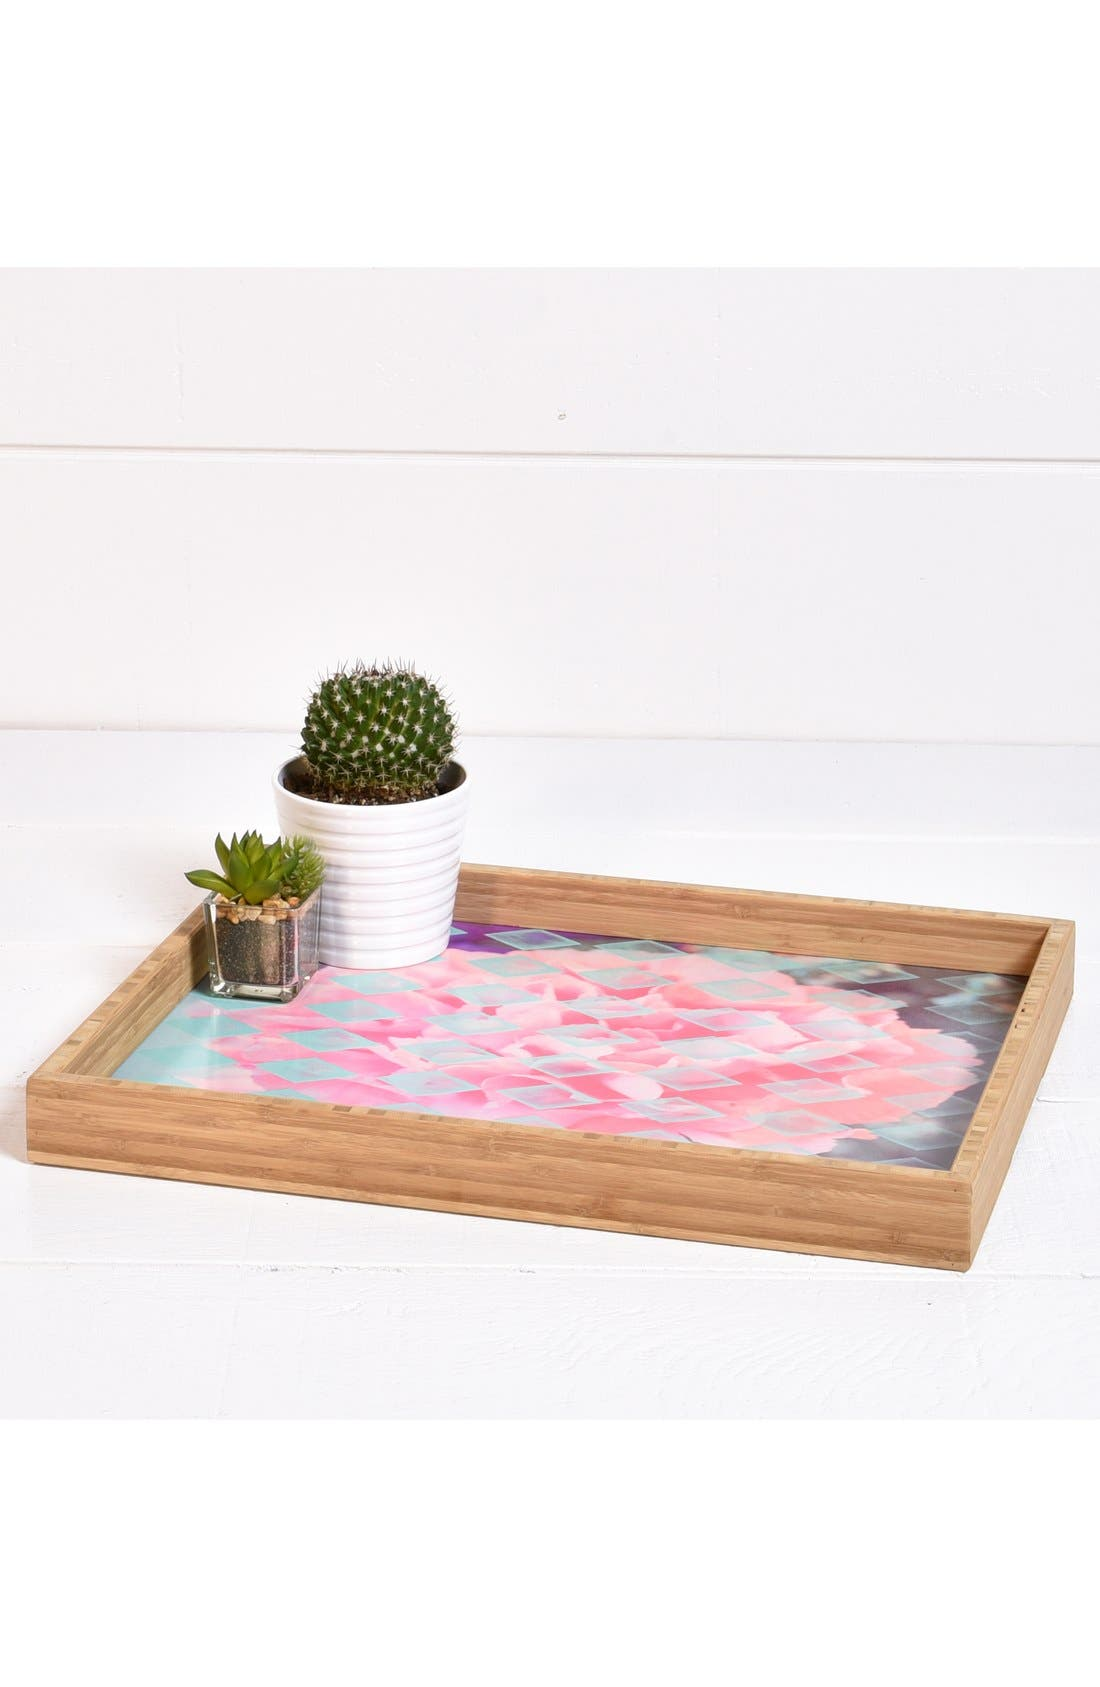 'Floral Diamonds' Decorative Serving Tray,                             Alternate thumbnail 3, color,                             Pink